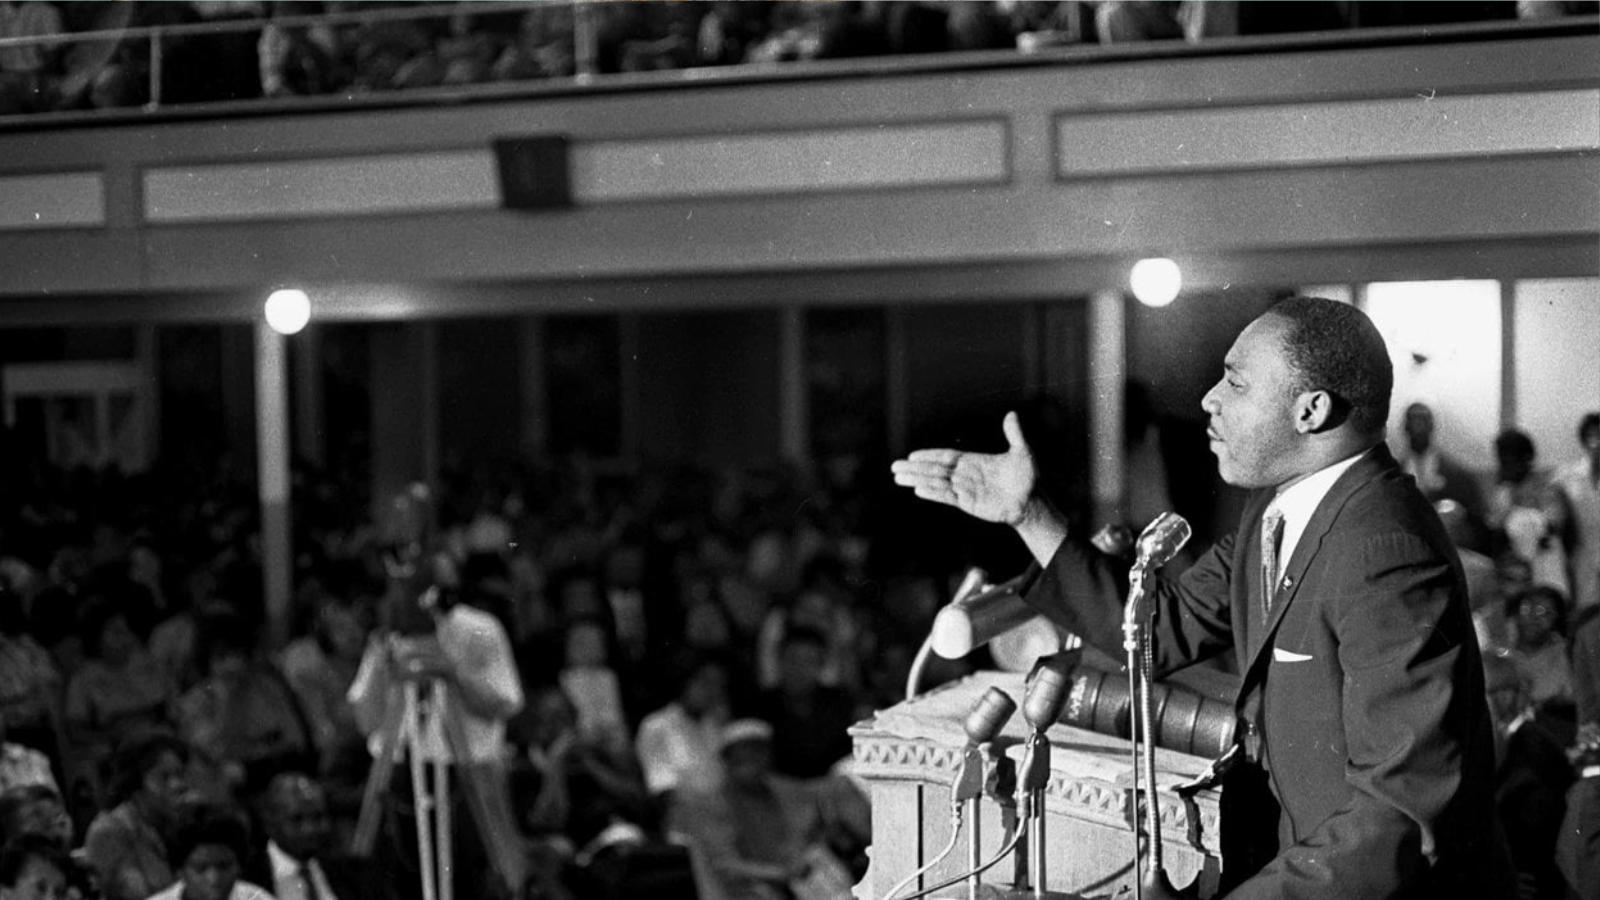 Martin Luther King Jr. speaking at River Side Church, to end the conflict in Vietnam; New York City, April 4, 1967. He is standing at a pulpit, hand pointing to the audience. People infront of him listening.